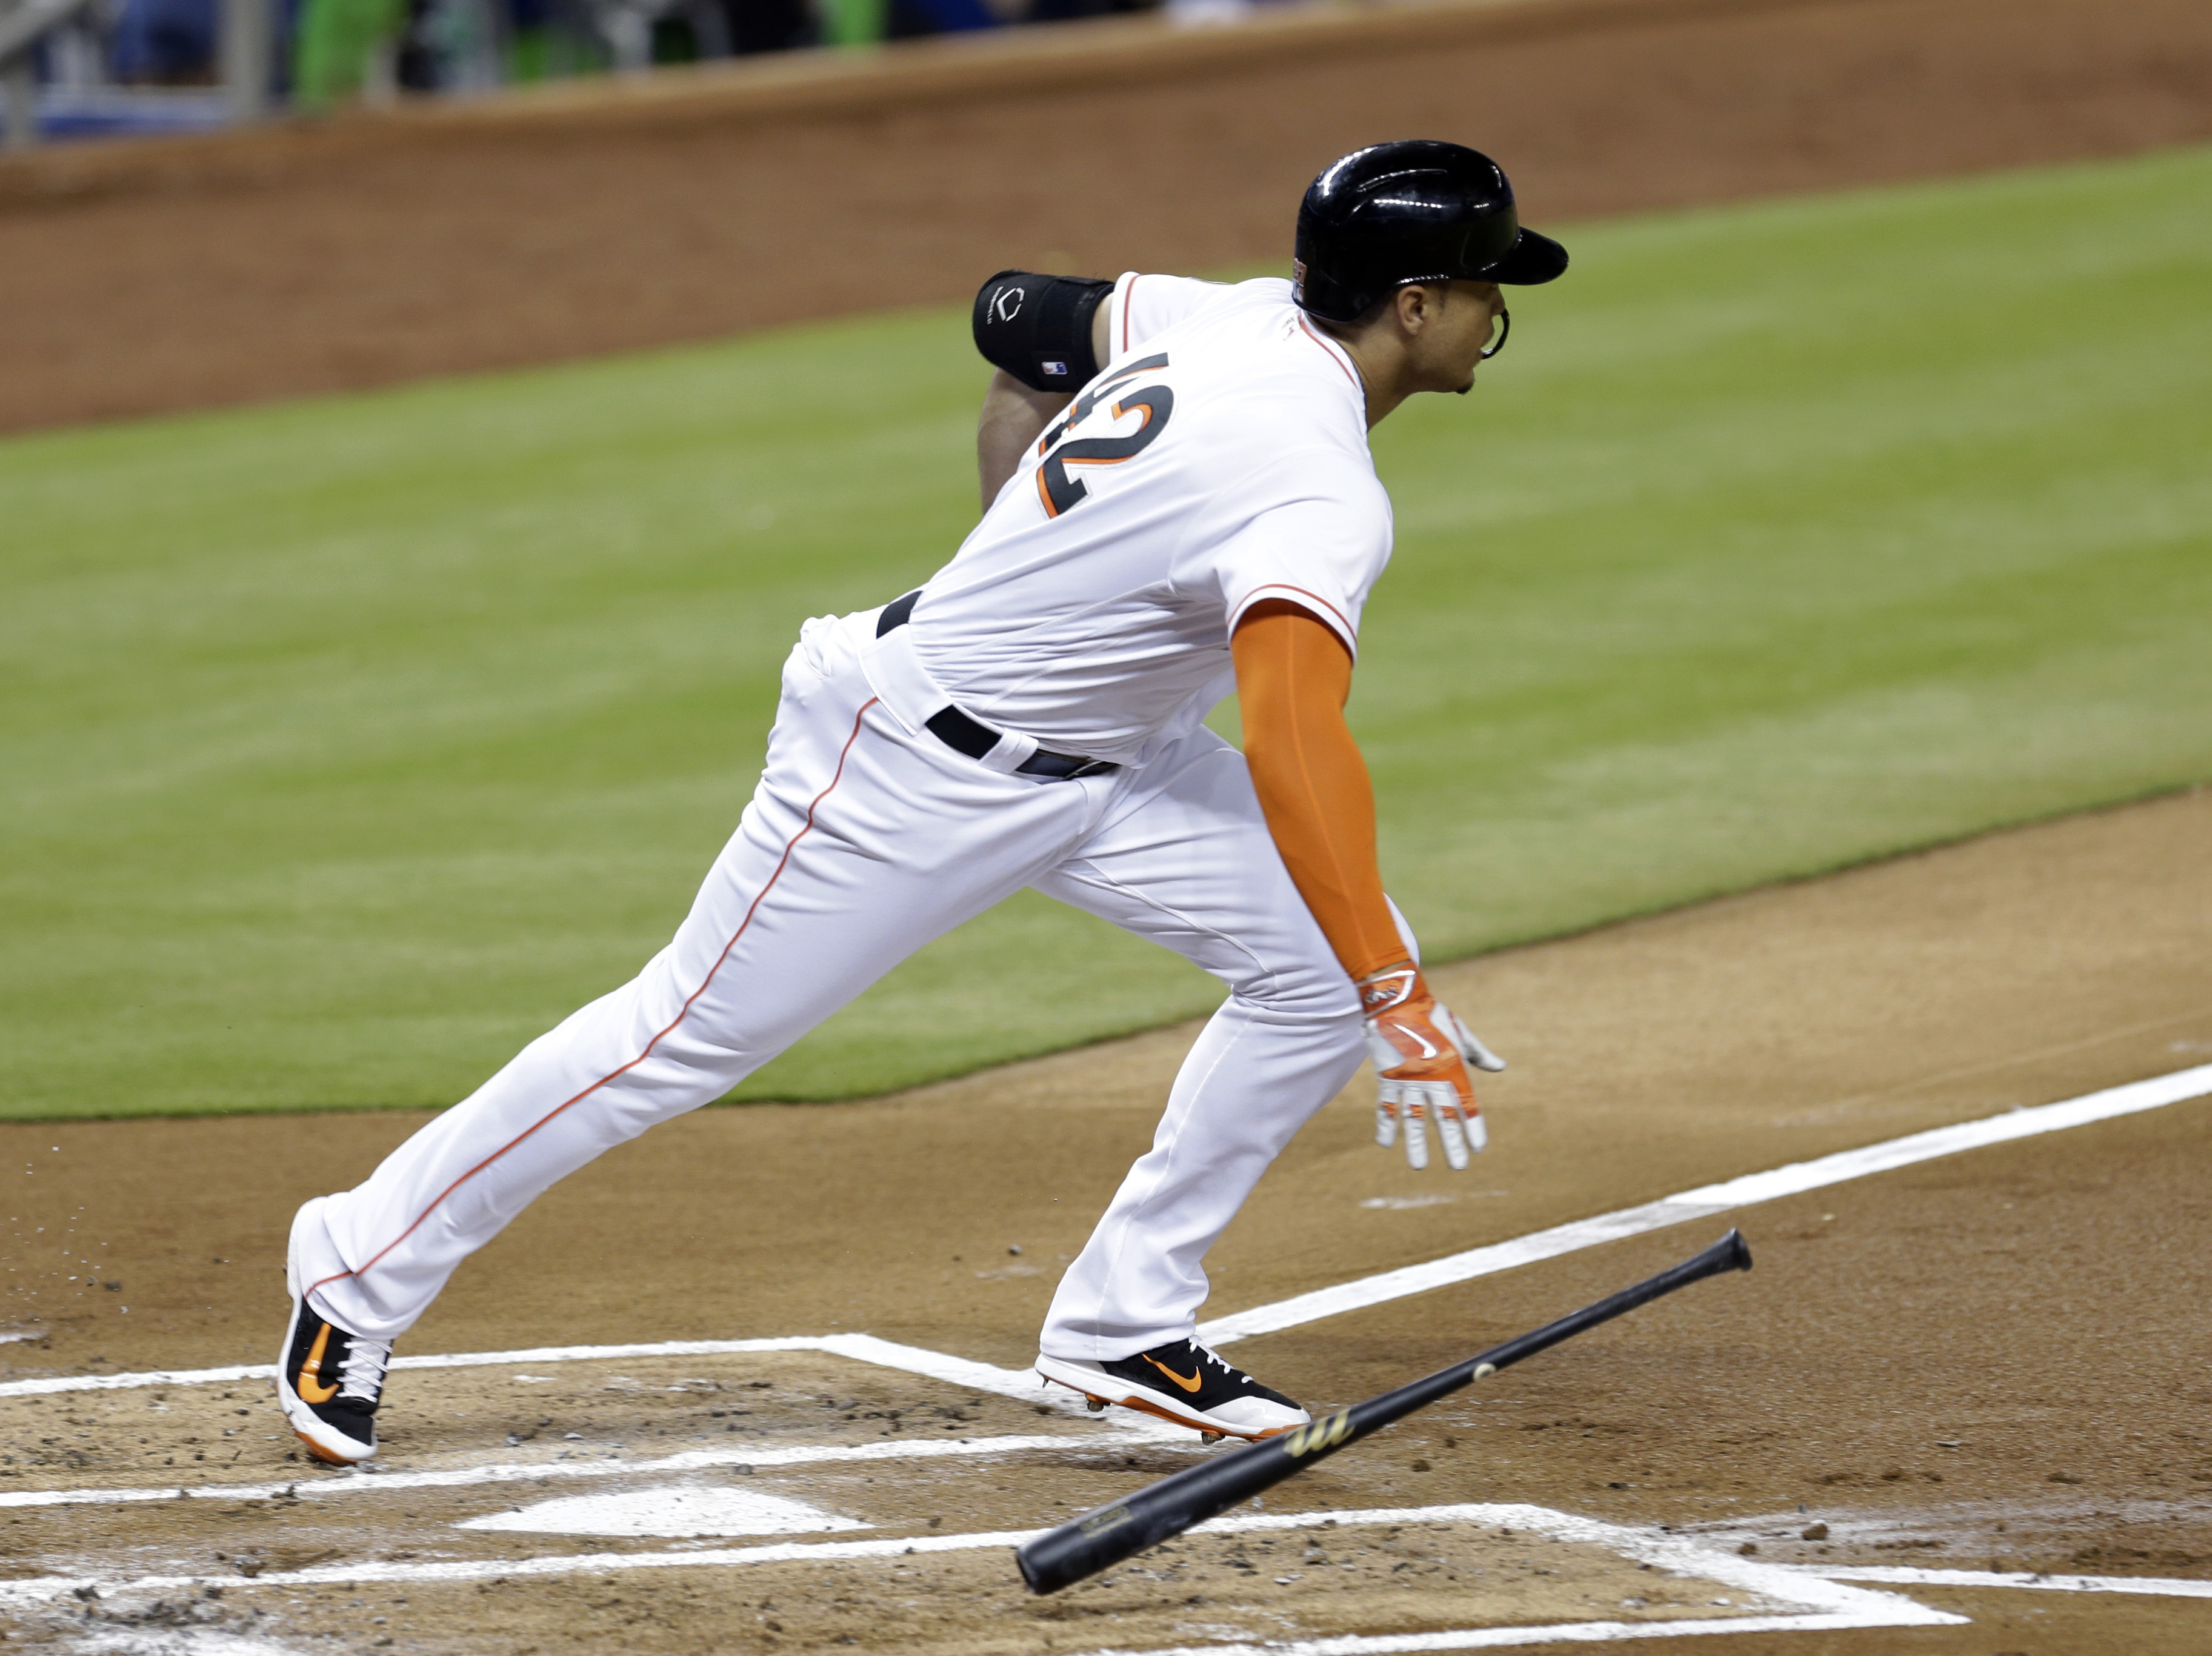 Trumbo homers twice in 7th, Orioles beat Rangers 11-5